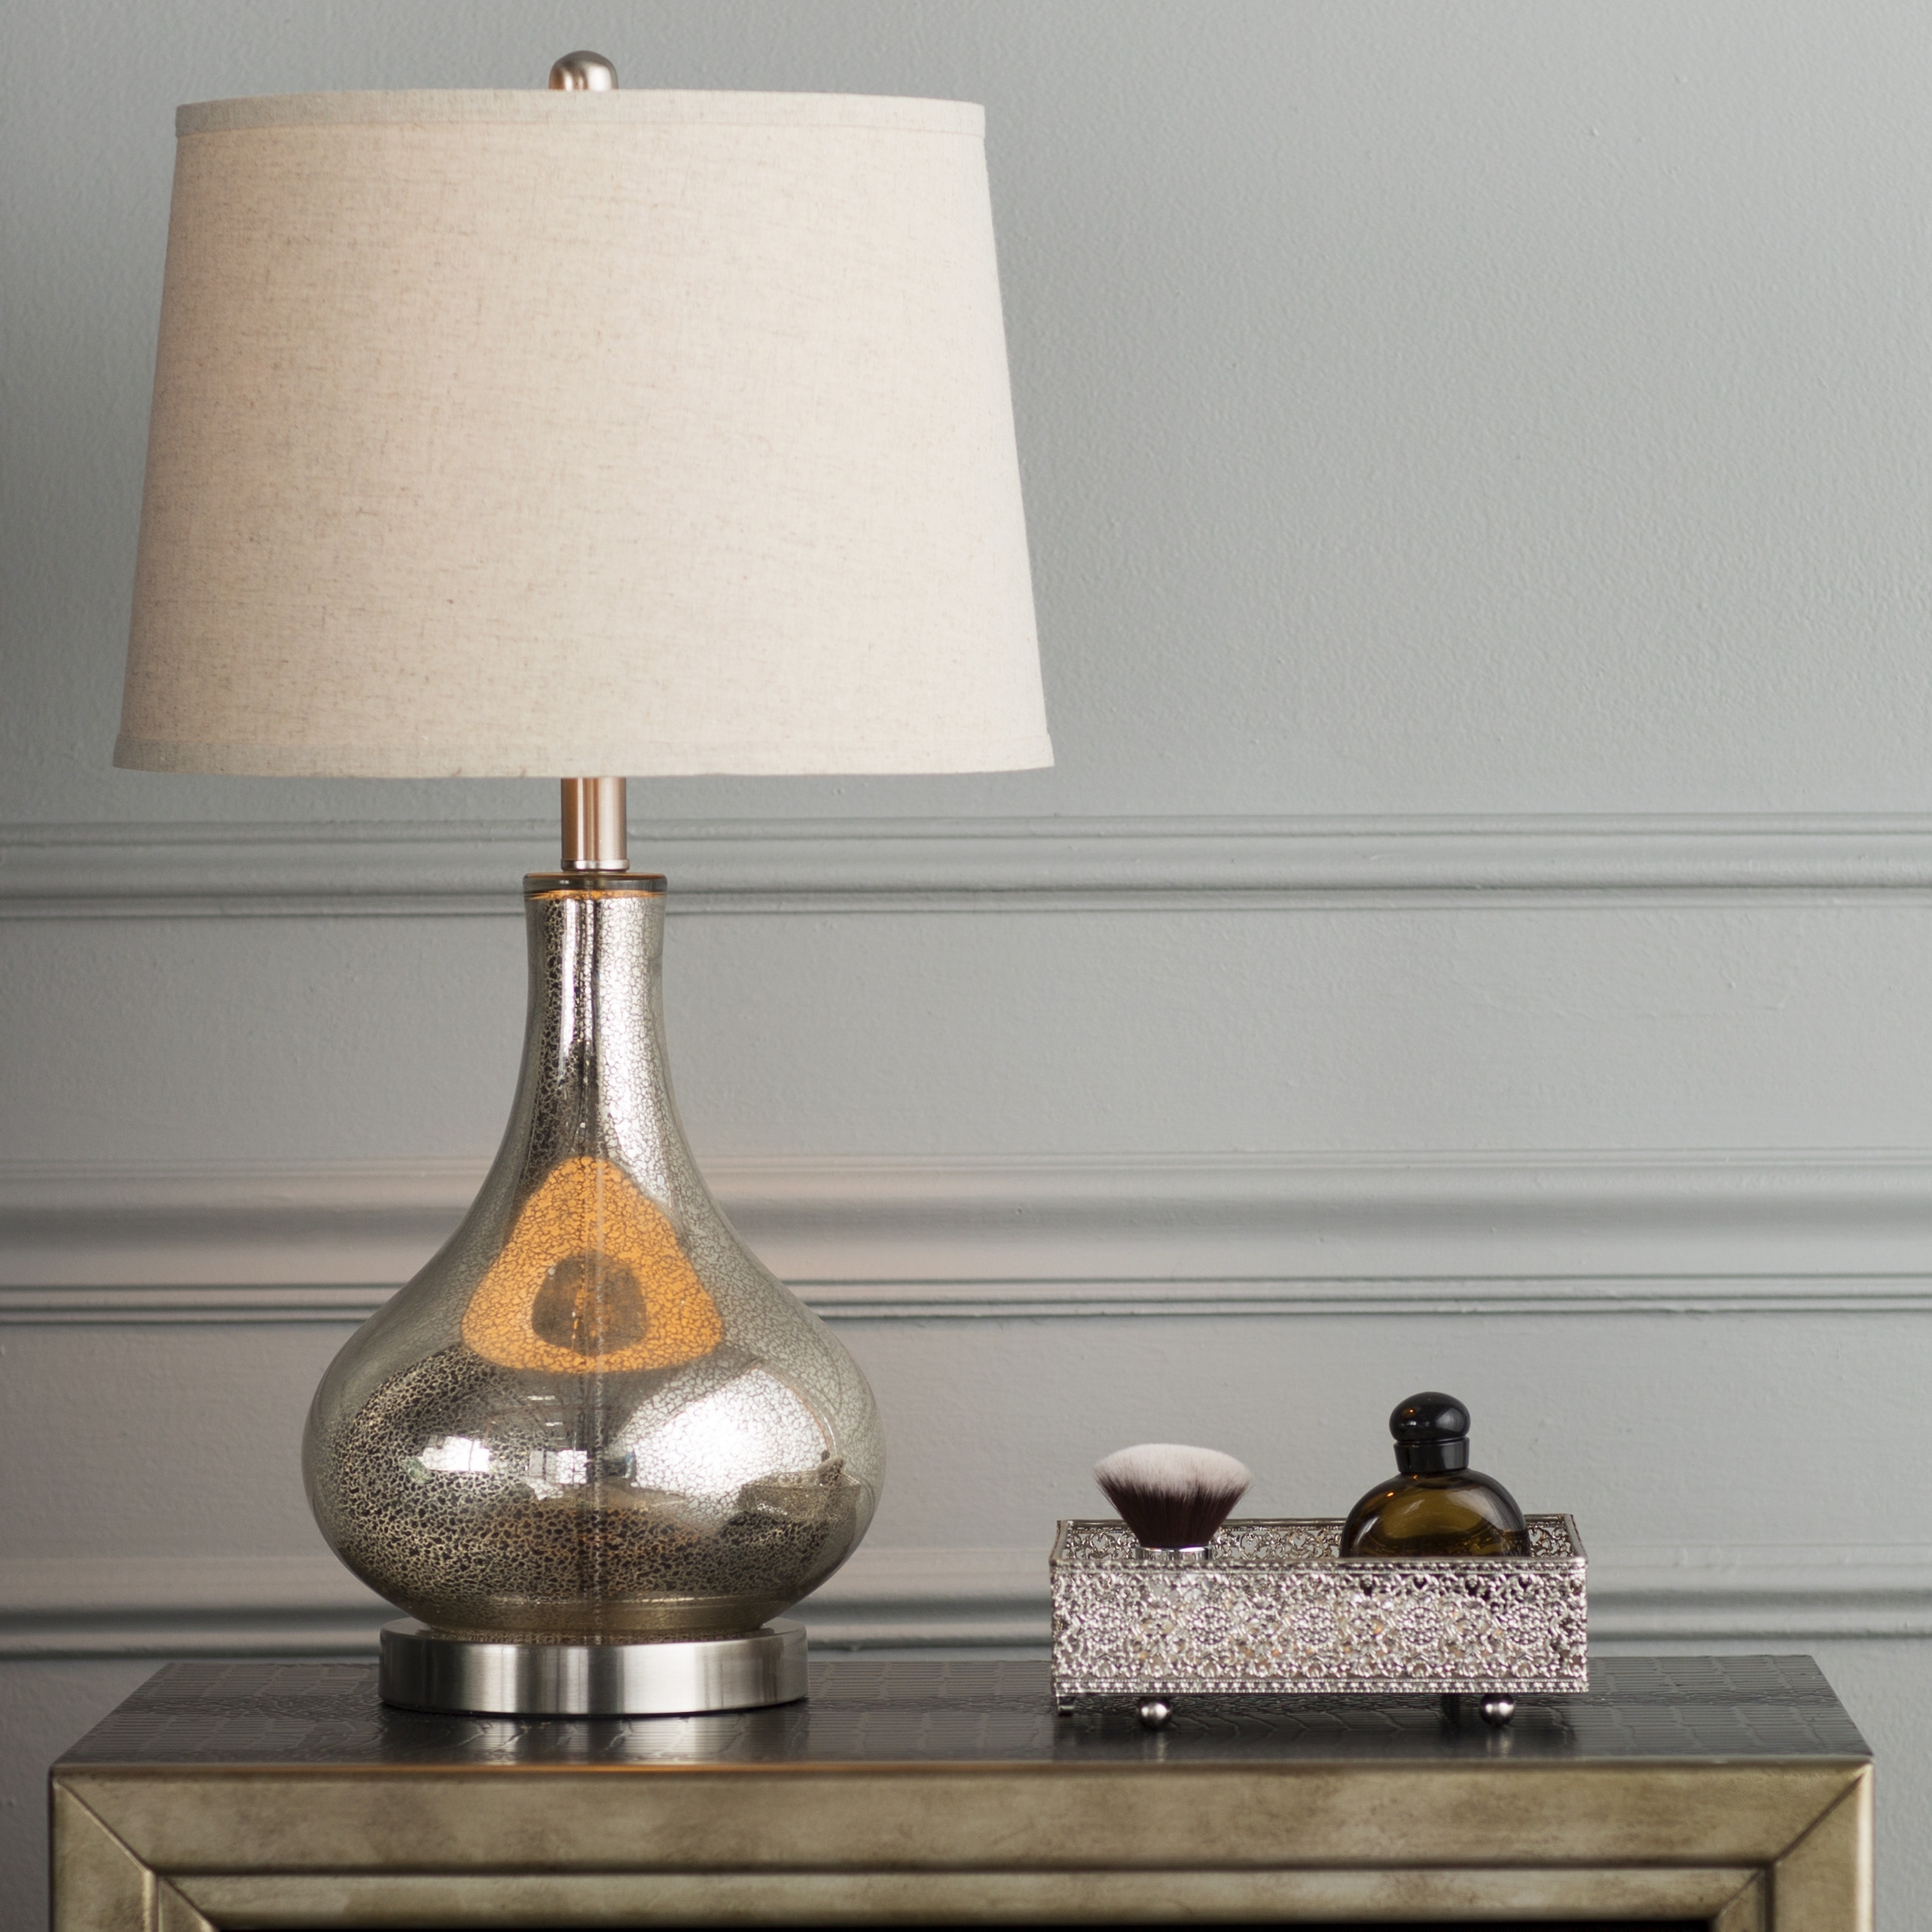 Widely Used Wayfair Living Room Table Lamps Within Top 69 Fine Touch Table Lamps Silver Blue Lamp Living Room Wayfair (View 15 of 15)